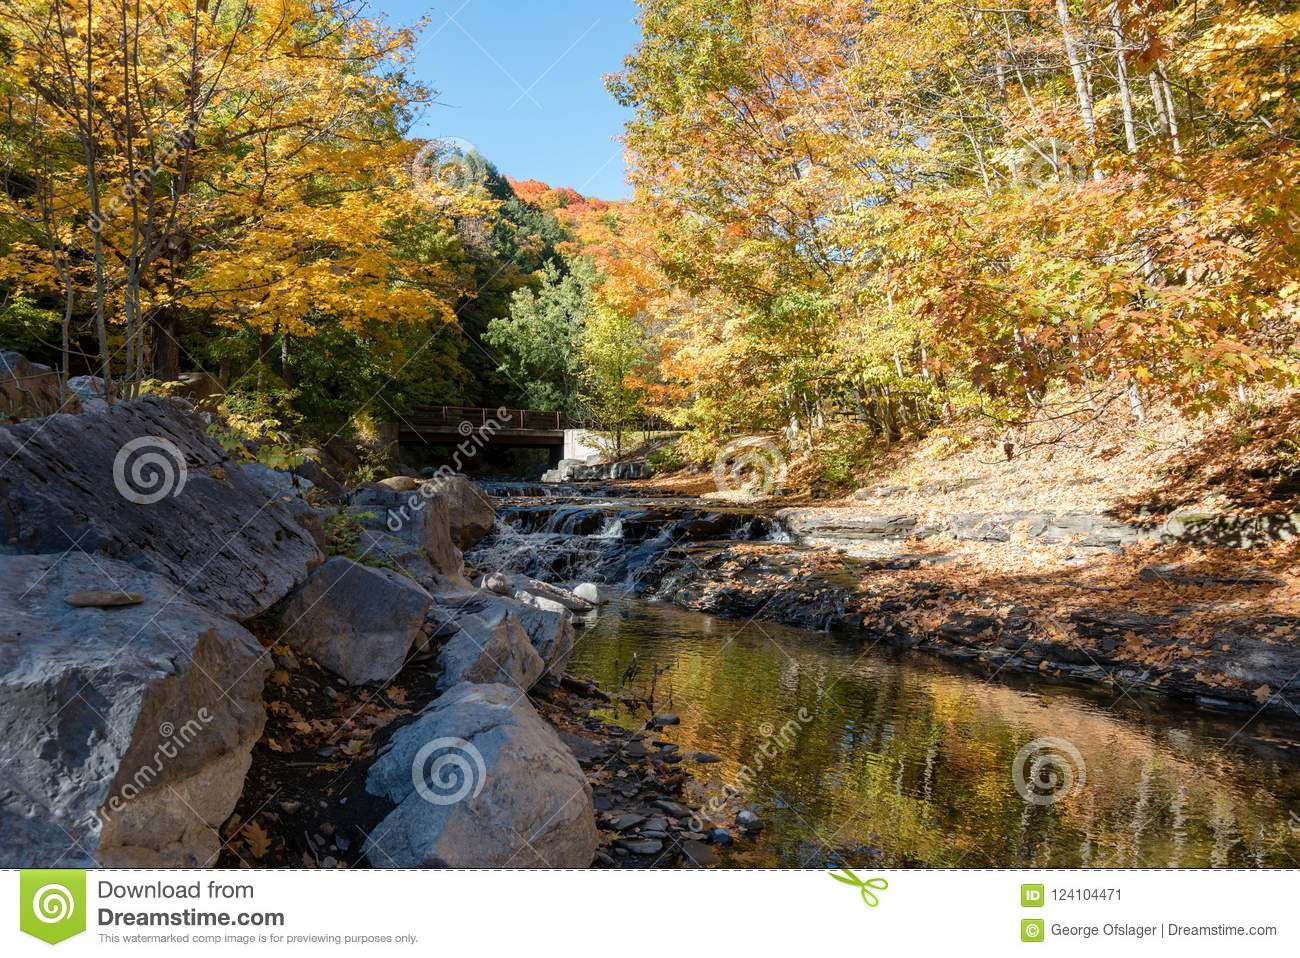 An Autumn Afternoon by a Mountain Stream